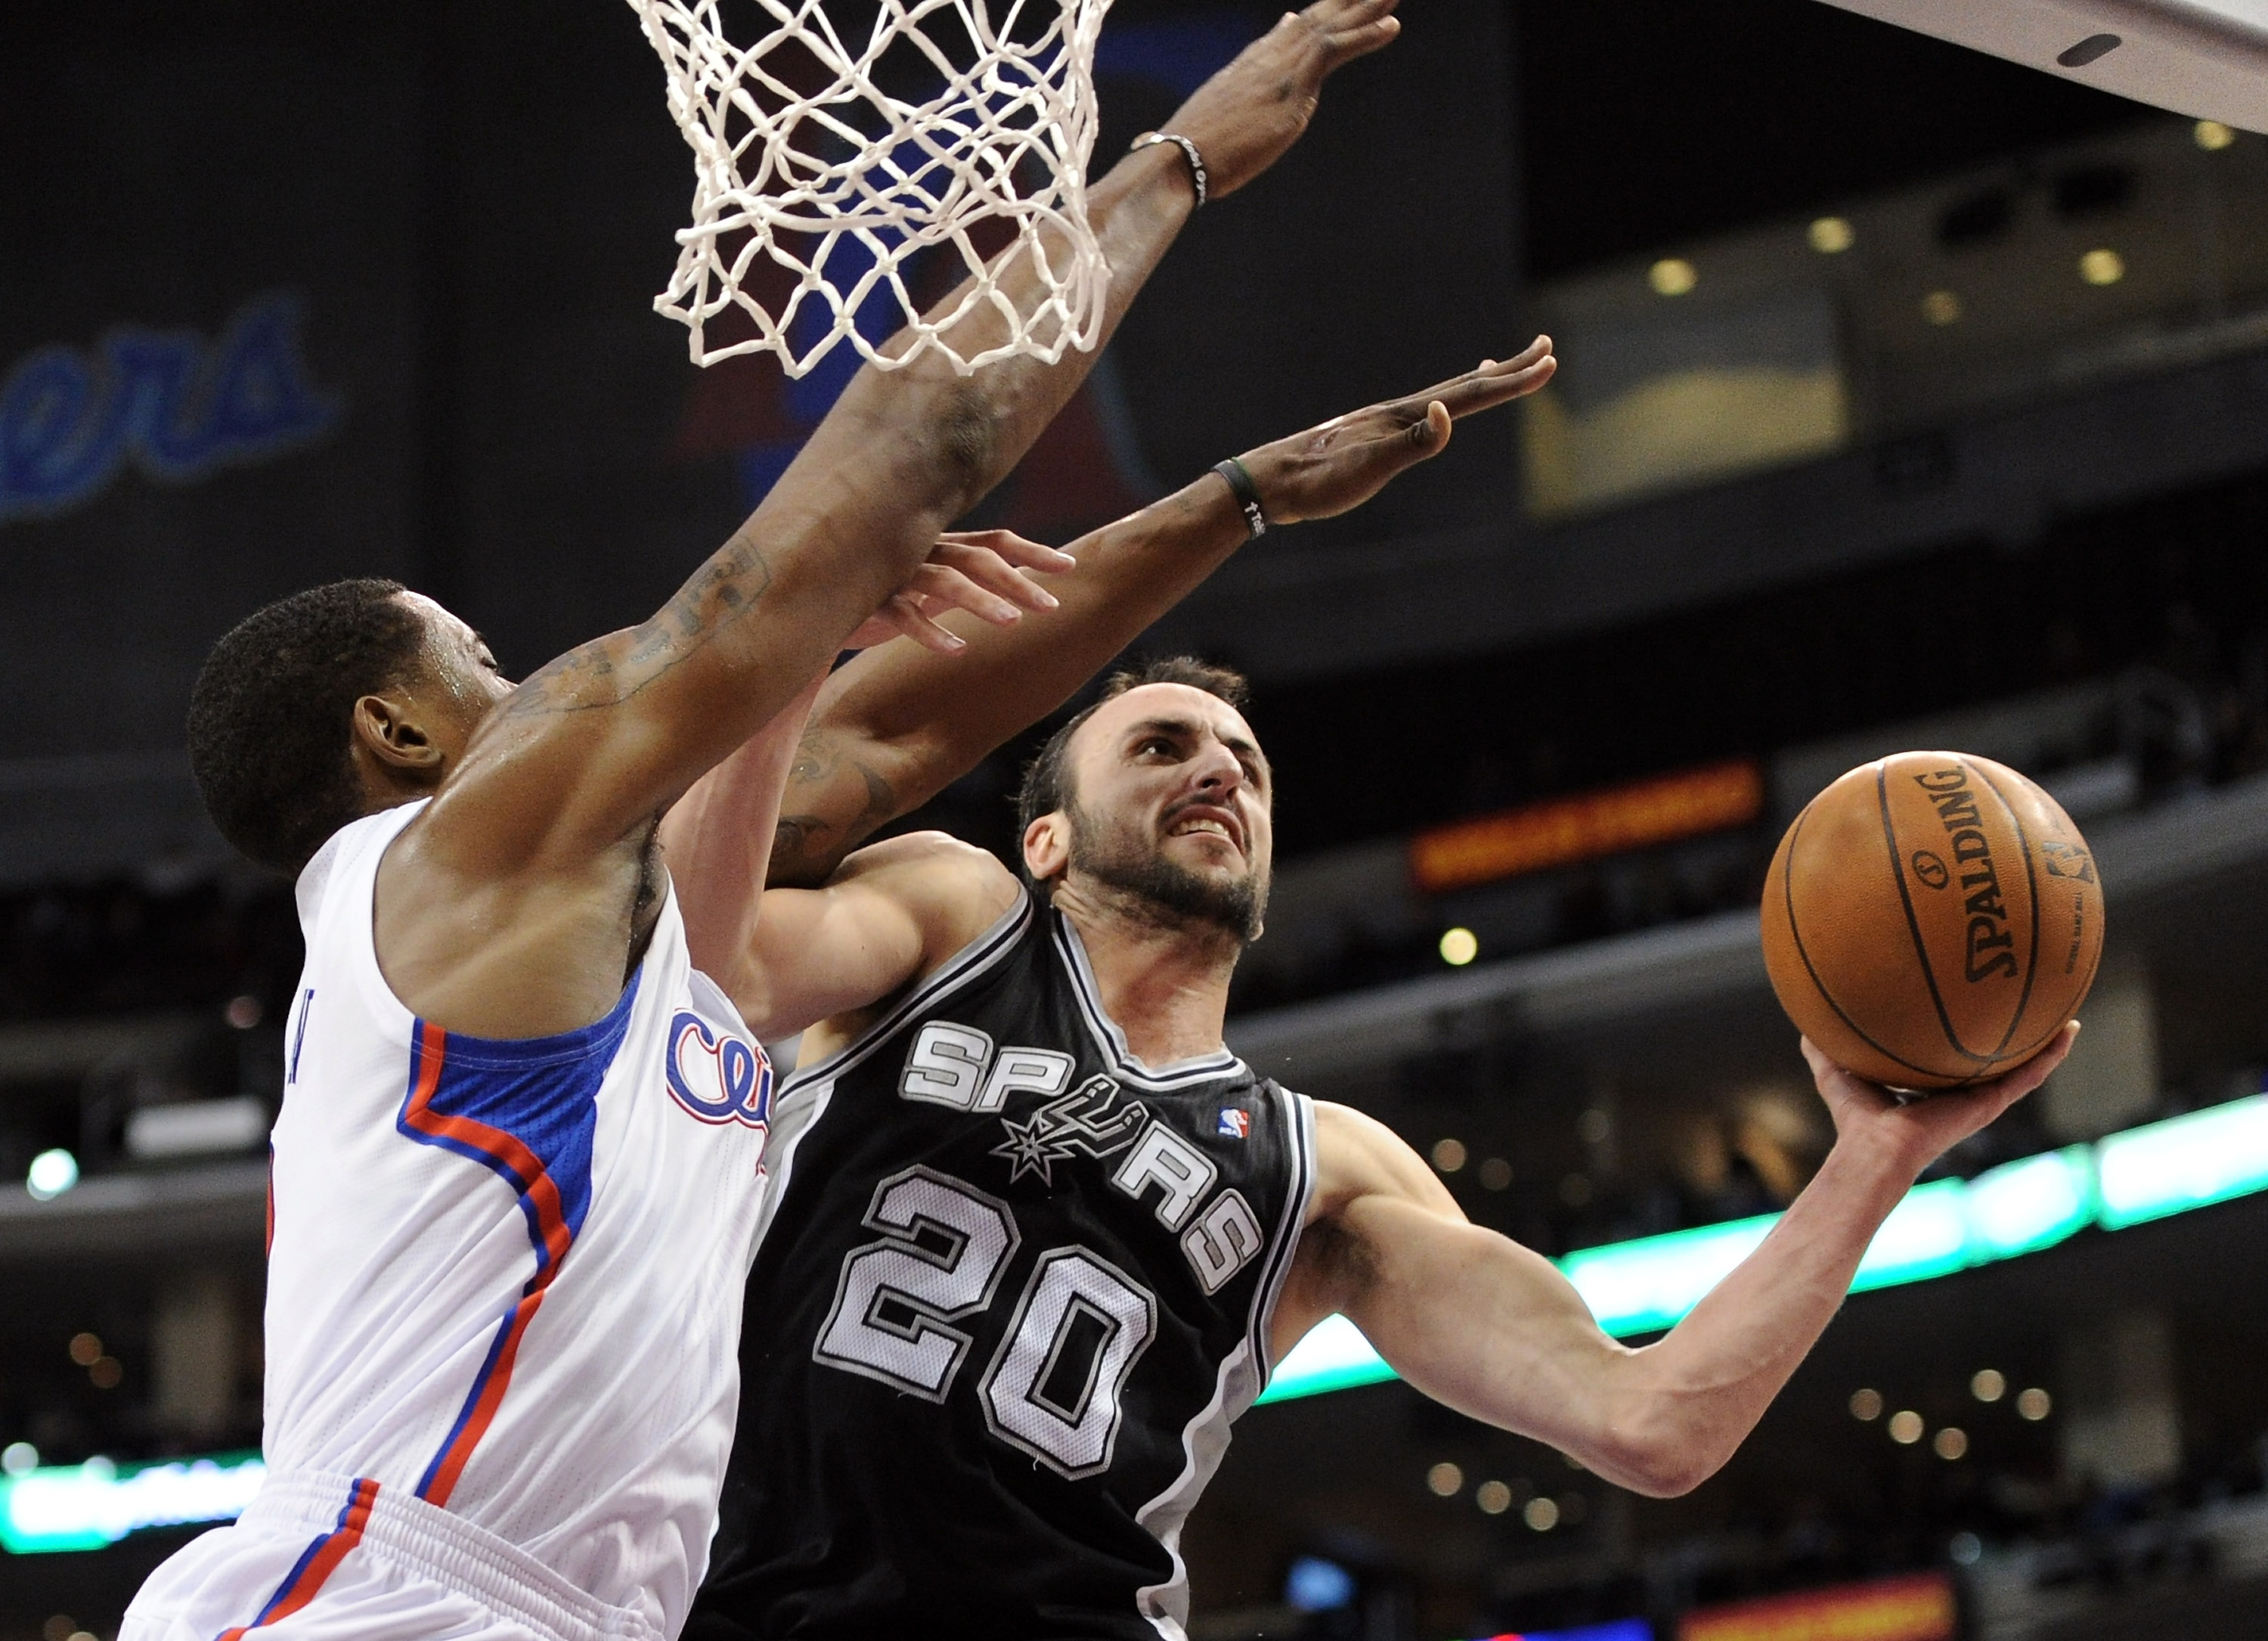 LOS ANGELES, CA - DECEMBER 01:  Manu Ginobili #20 of the San Antonio Spurs attempts a shot over the defense of DeAndre Jordan #9 of the Los Angeles Clippers during a 90-85 Clipper win at the Staples Center on December 1, 2010 in Los Angeles, California.